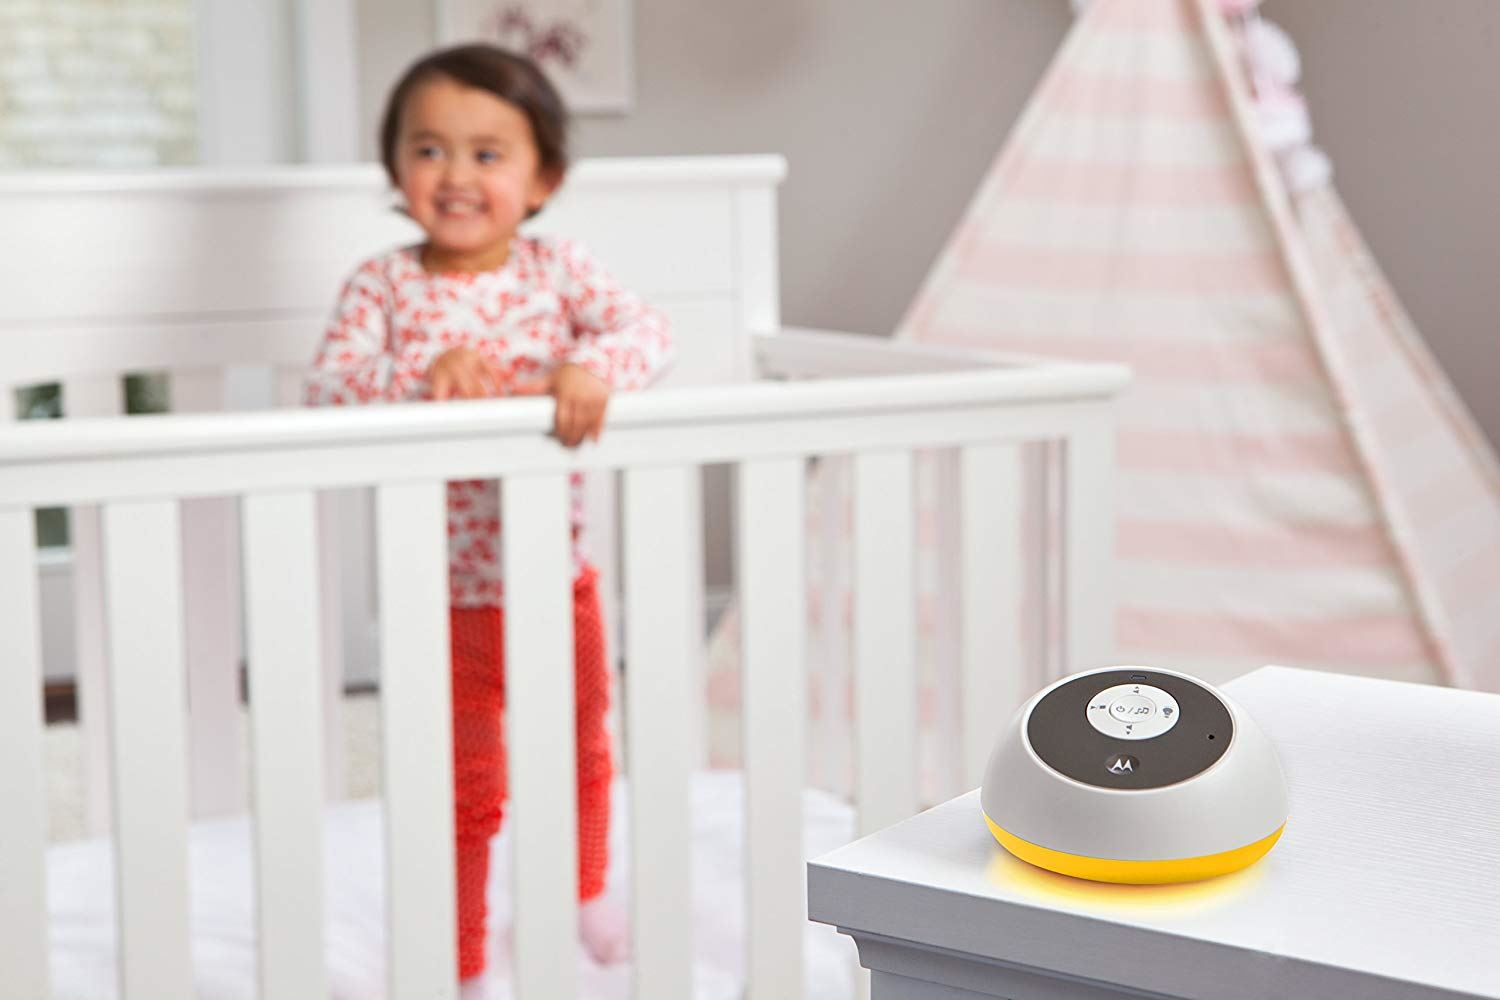 Motorola MBP161 Timer Audio Baby Monitor With Room Temperature Monitoring NEW